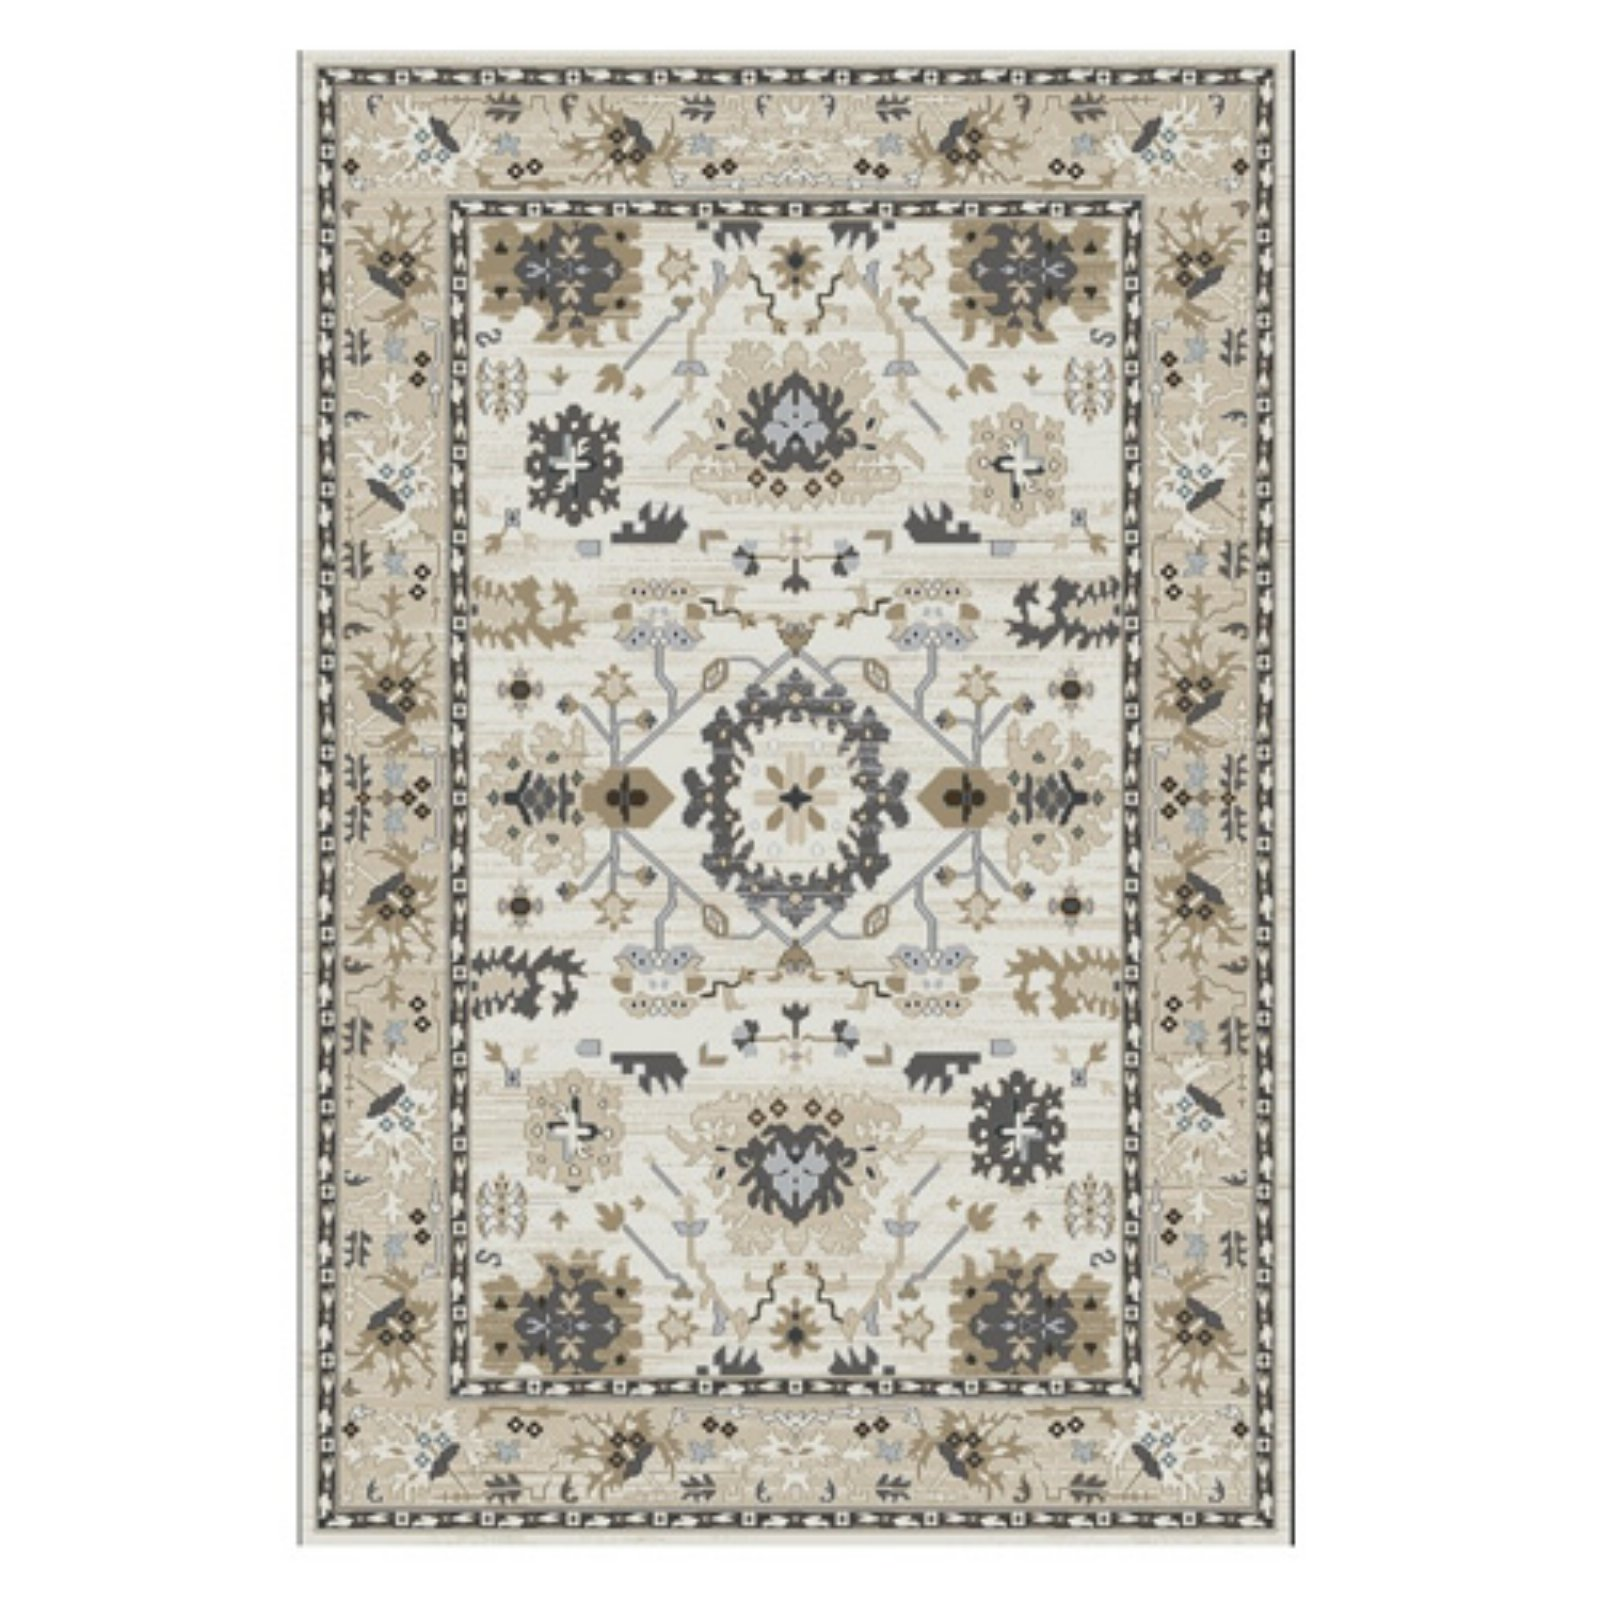 Dynamic Rugs Yazd 8531 Indoor Area Rug Ivory Dynamic Rugs Beige Area Rugs Indoor Area Rugs